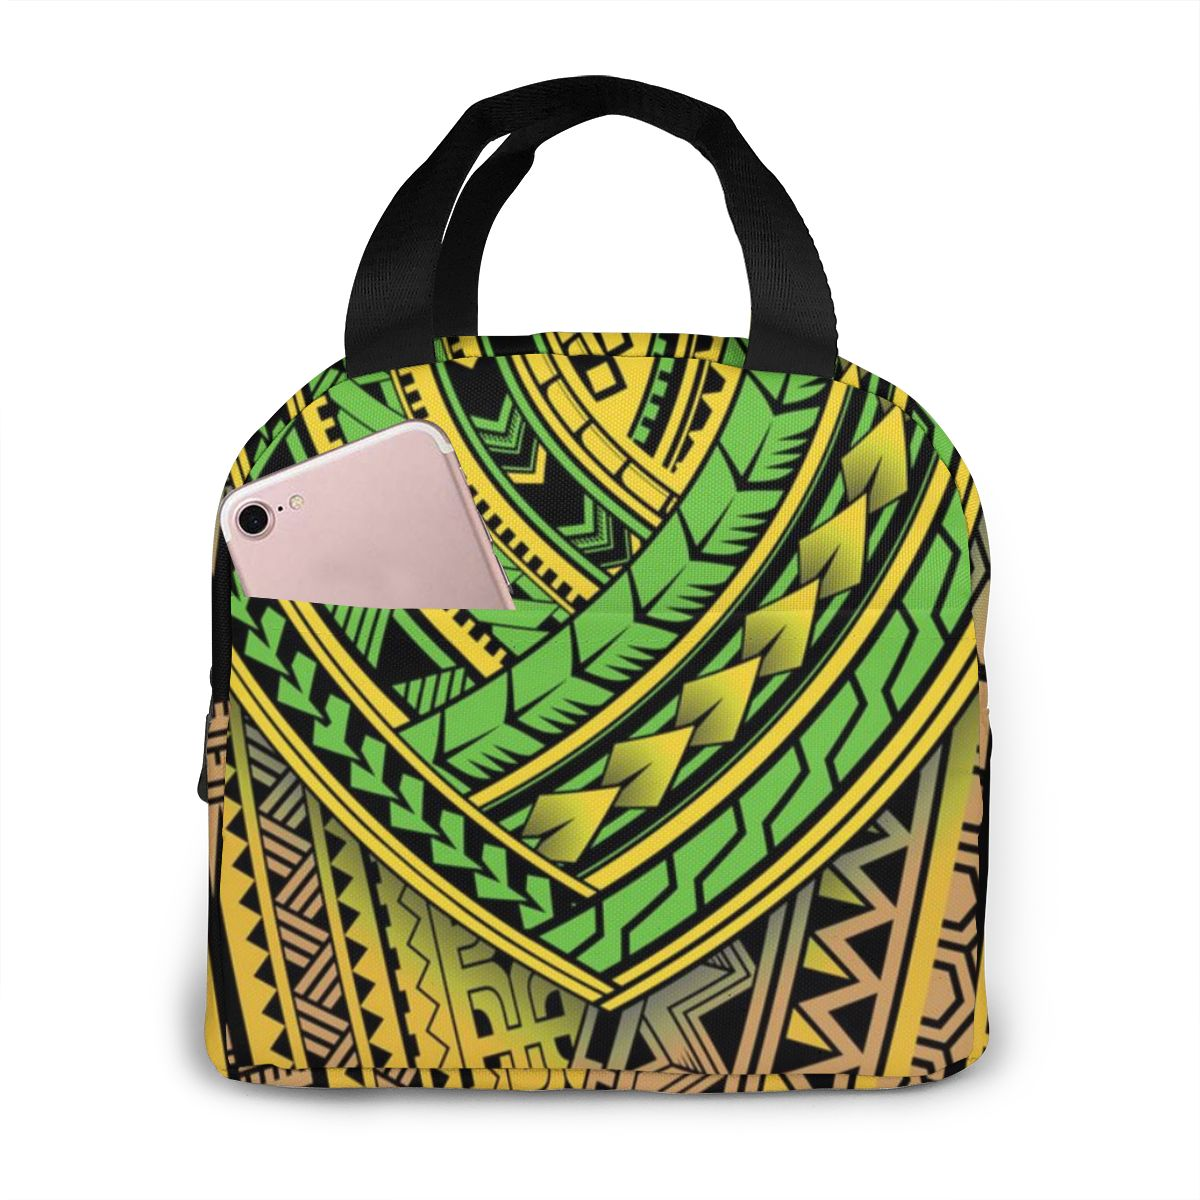 Work Lunch Tote Fresh Lunch Bags For Women Kids Girl Polynesian Tribal Print Portable Zipper Thermal Oxford Cooler Food BBQ Bag